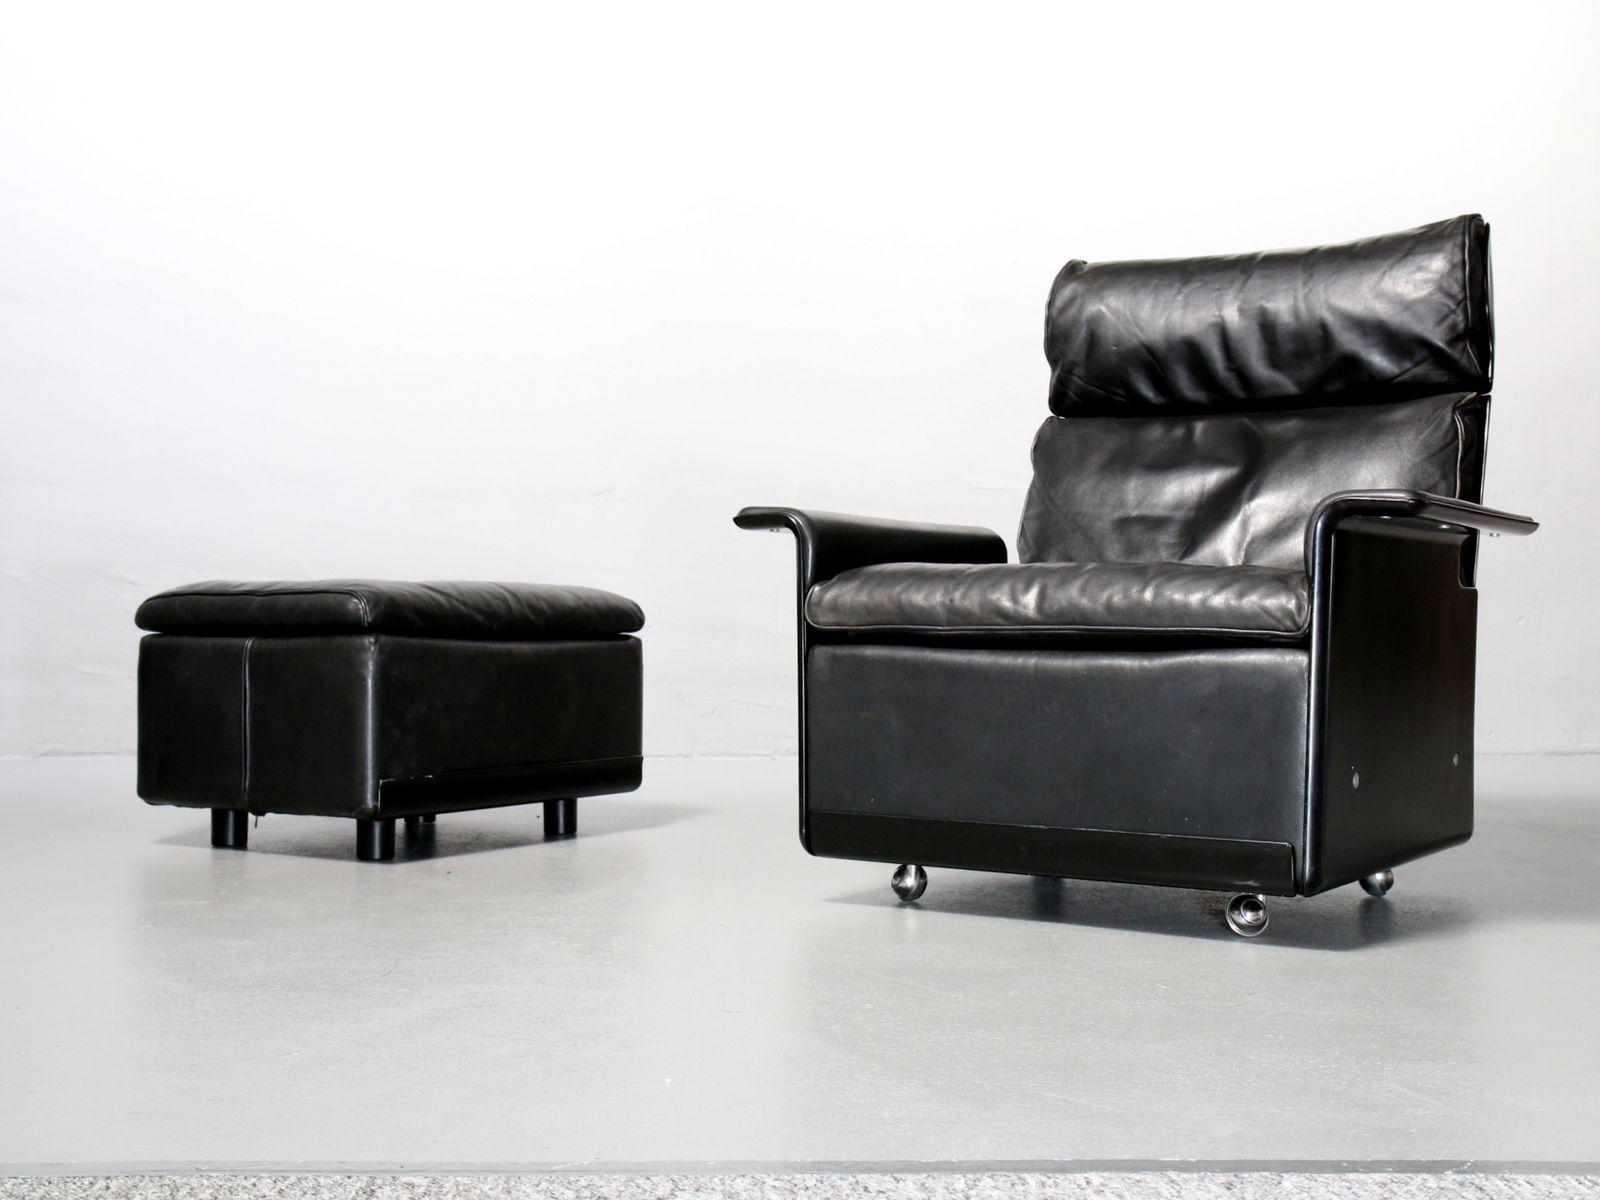 620 High Back Chair and Ottoman by Dieter Rams for Vitsoe 1980s